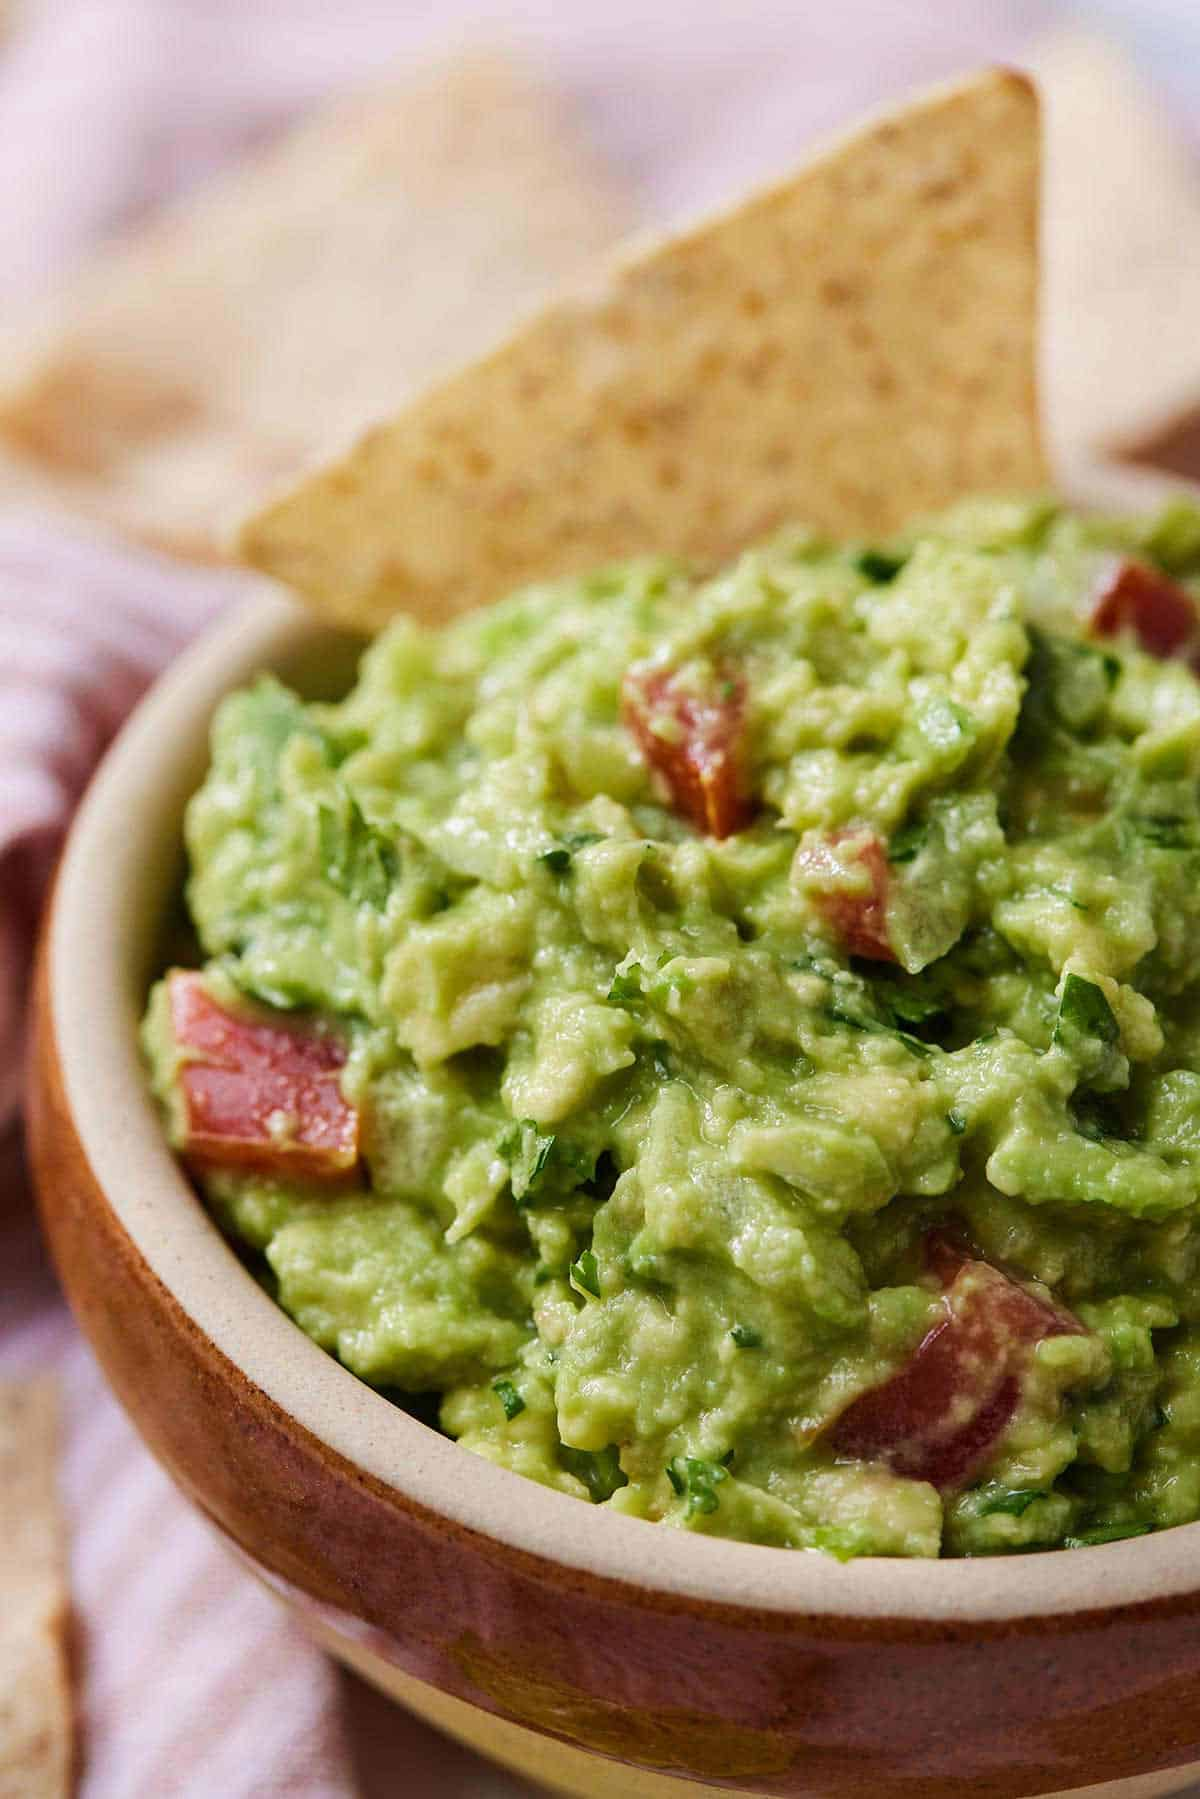 An angled image of a bowl of guacamole with a tortilla chip inside of the dip.